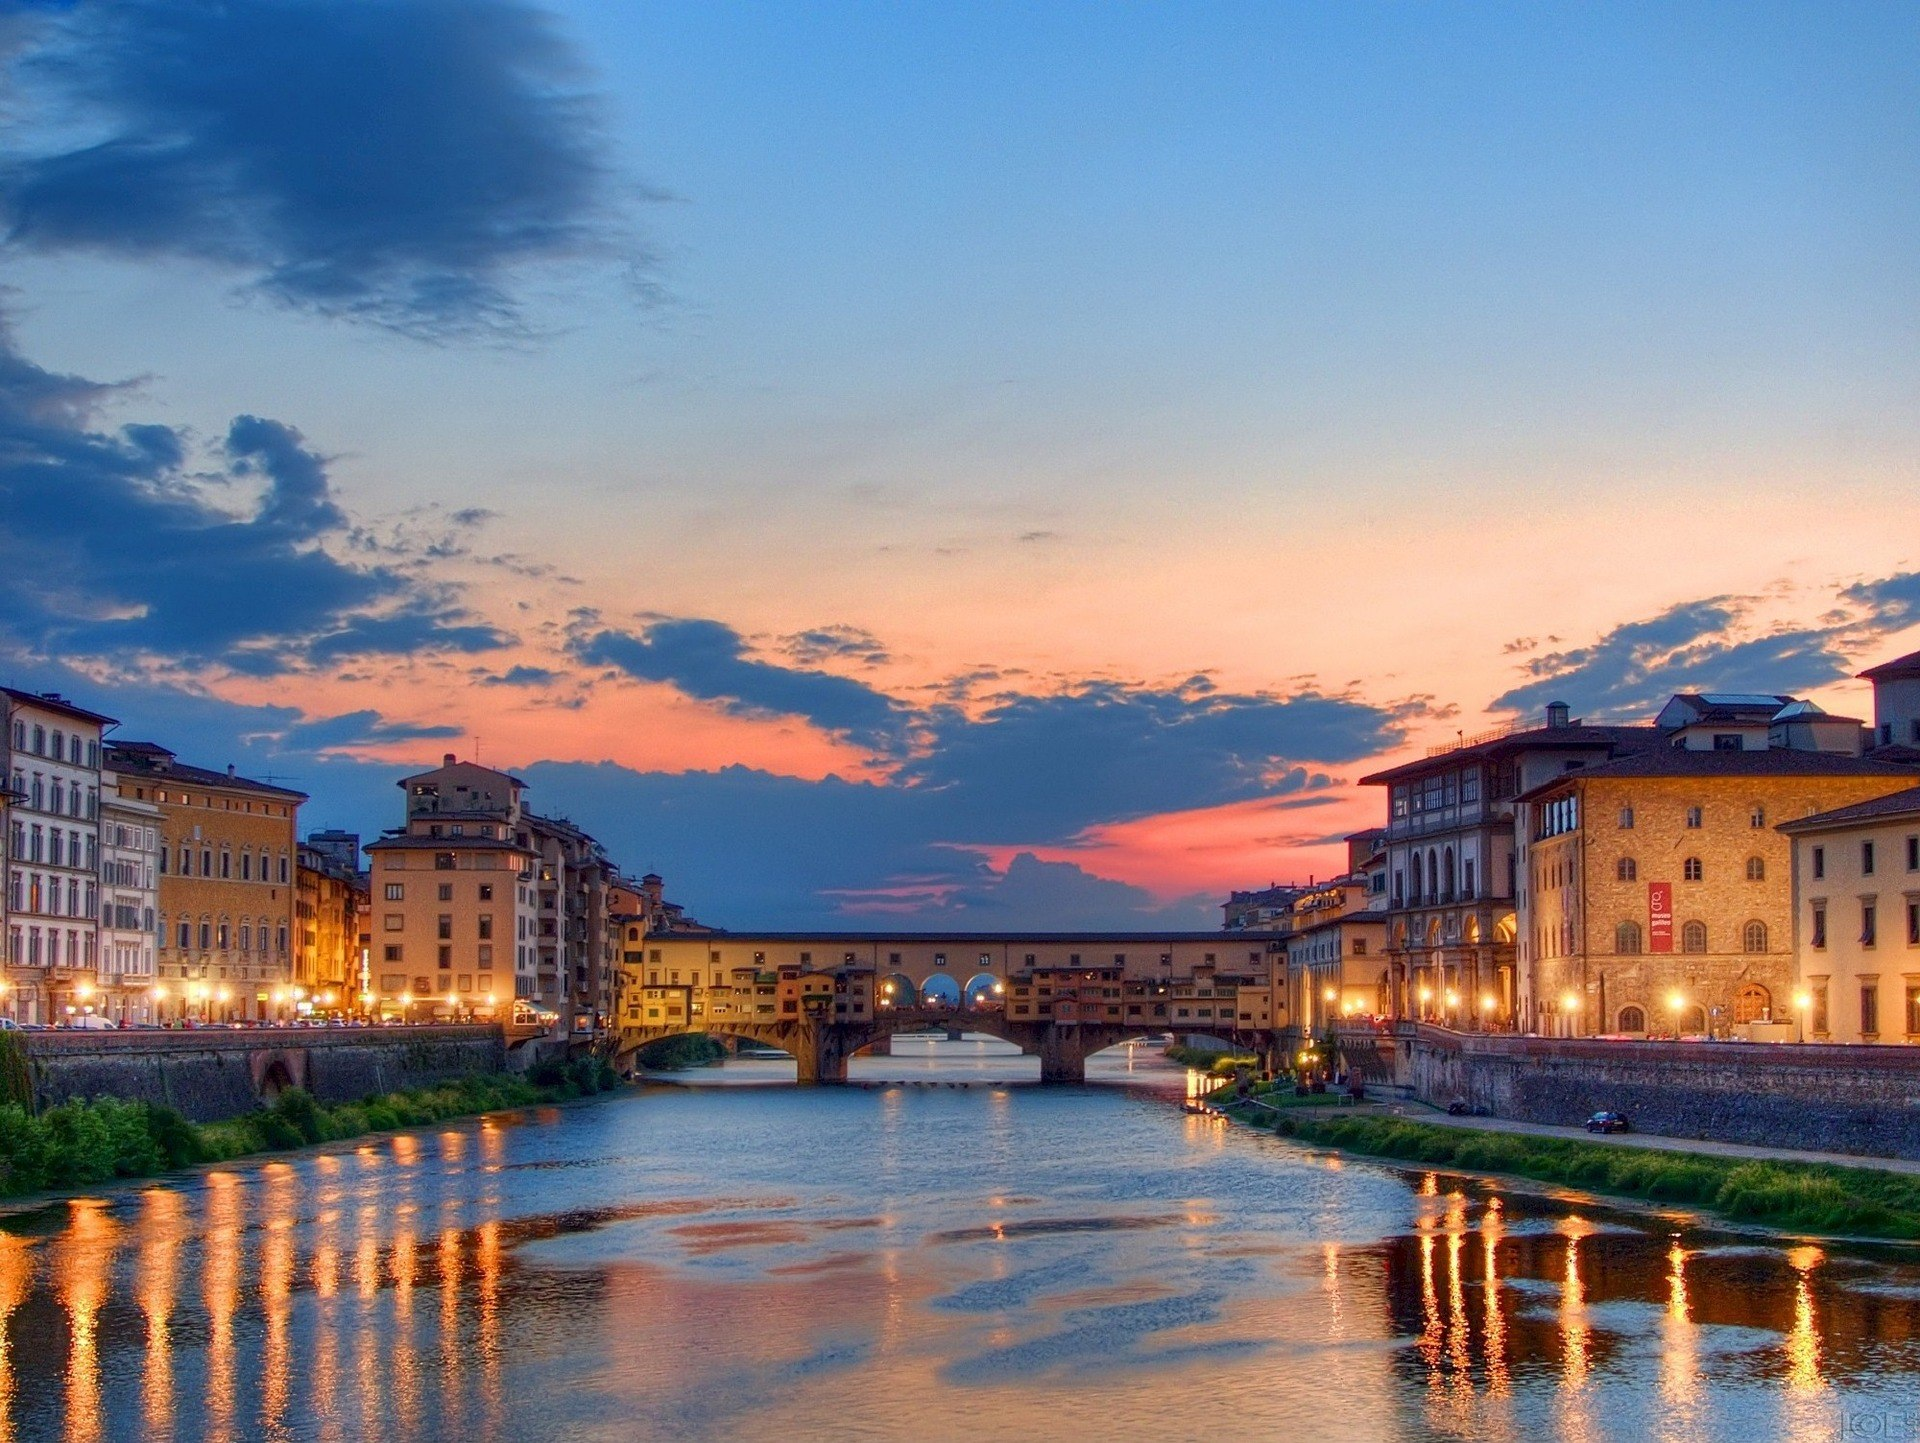 The River Arno